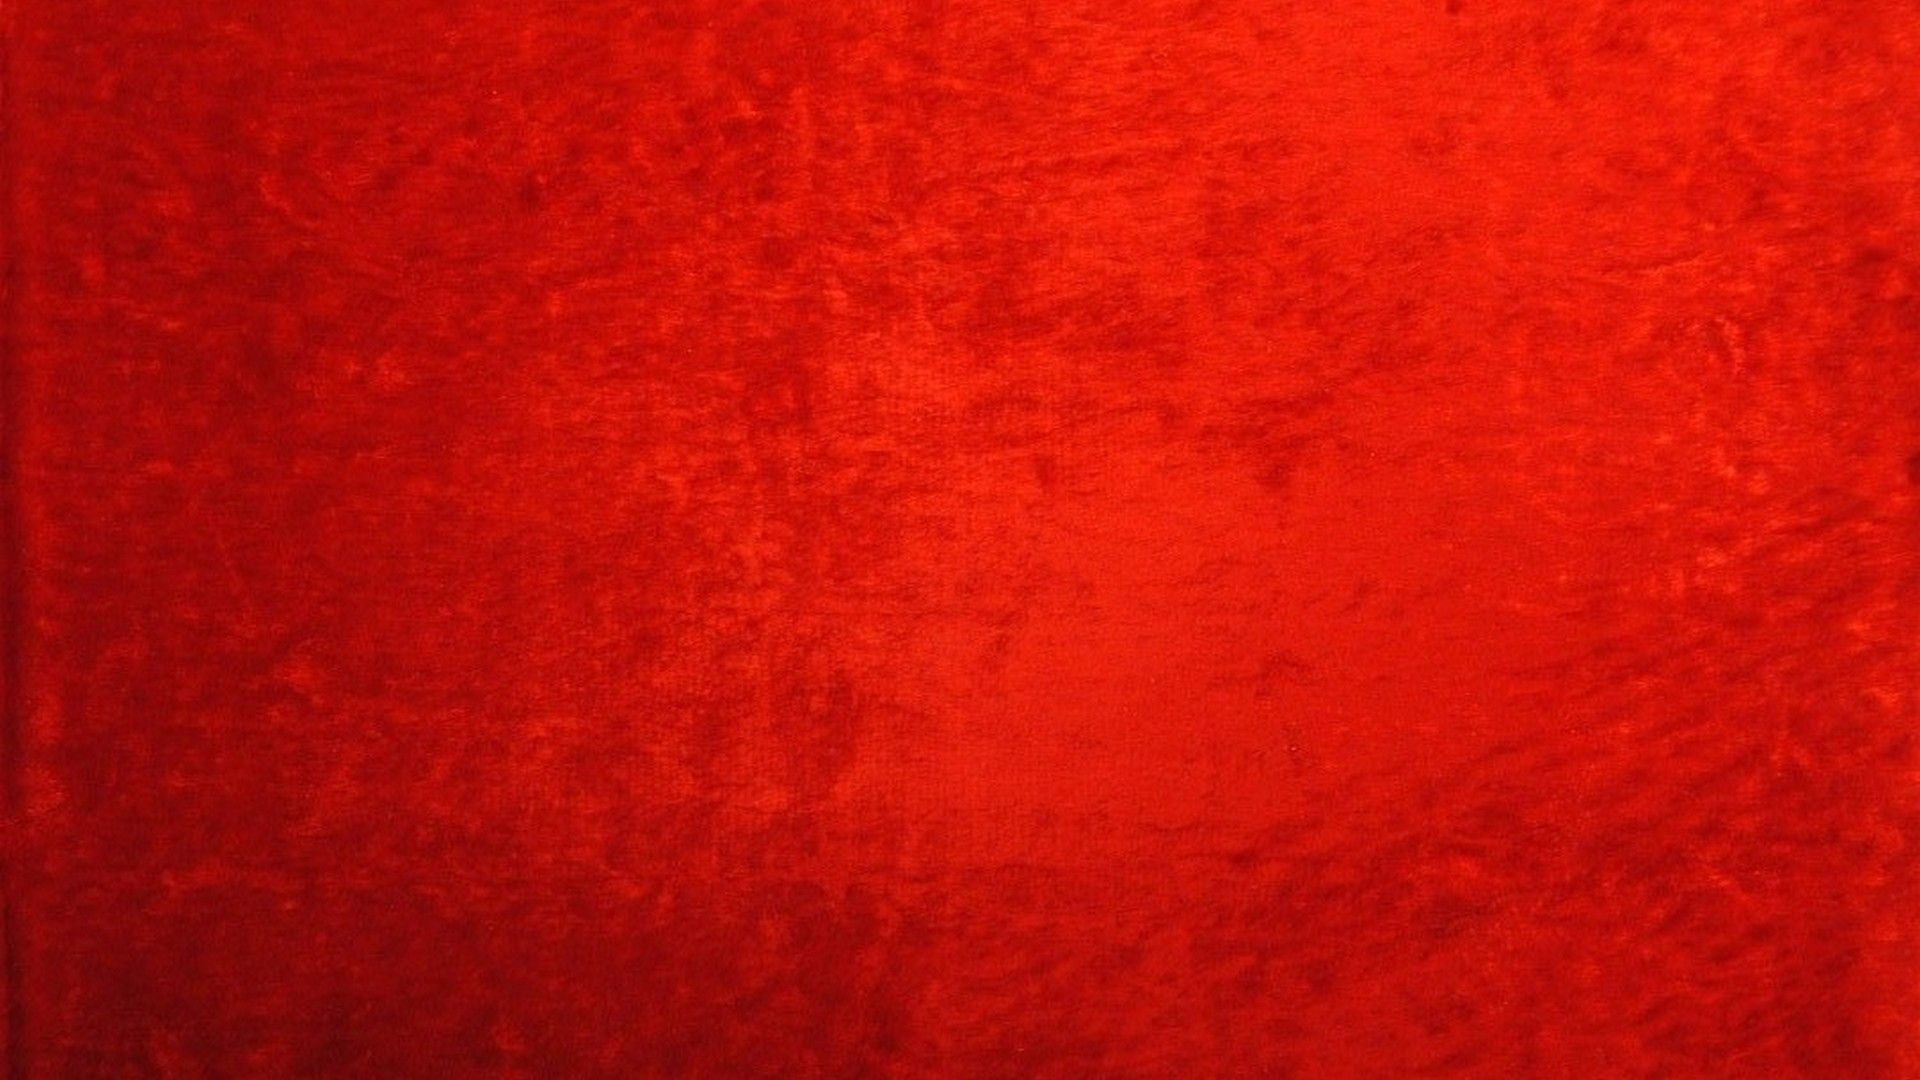 Red Texture HD Wallpapers - Top Free Red Texture HD Backgrounds ...